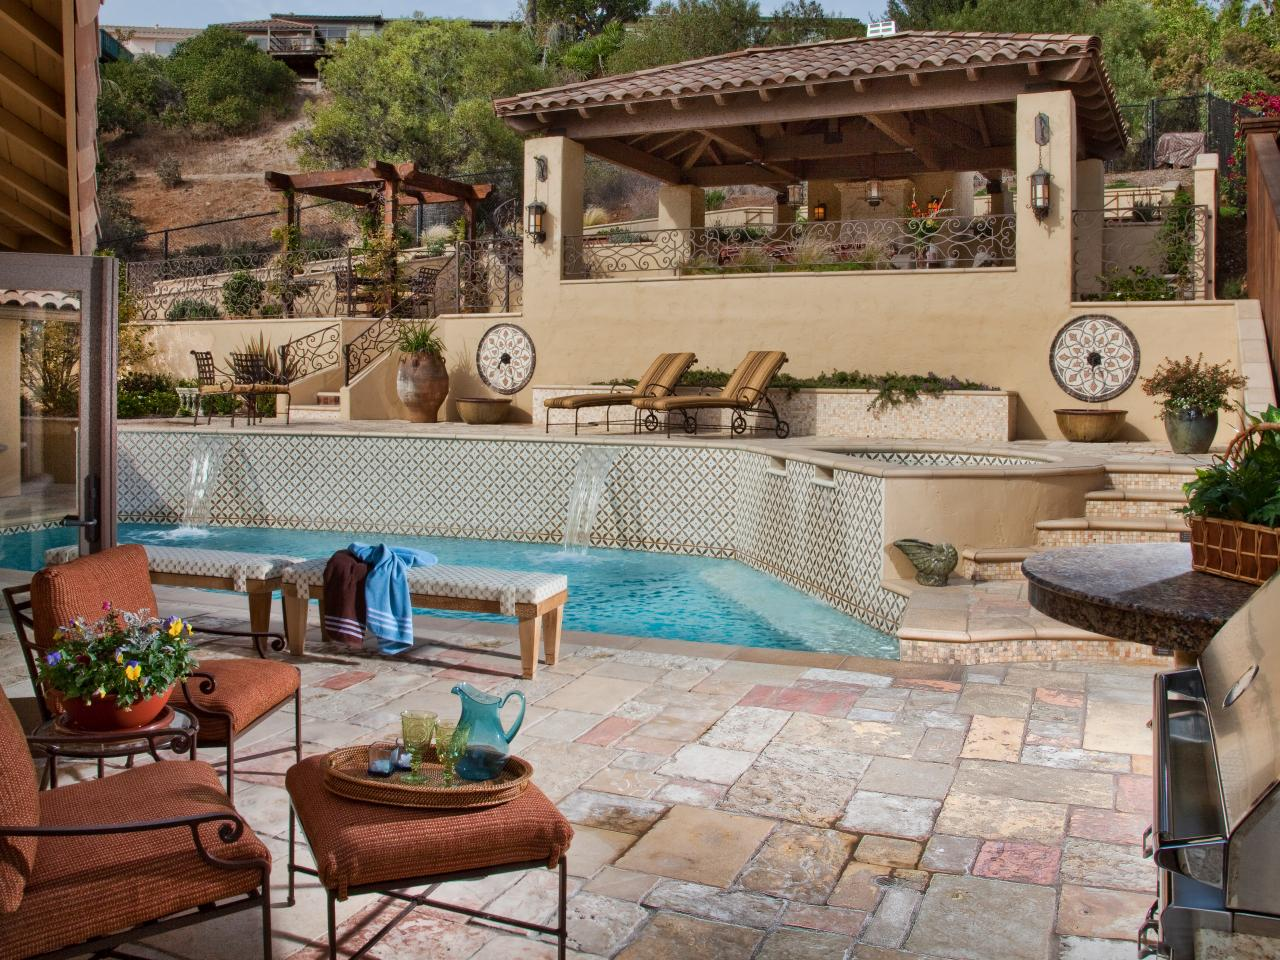 Pool Deck Design Ideas exterior awesome pool deck design ideas designer above ground engaging fit the home swimming spool Design A Pool Deck Or Patio